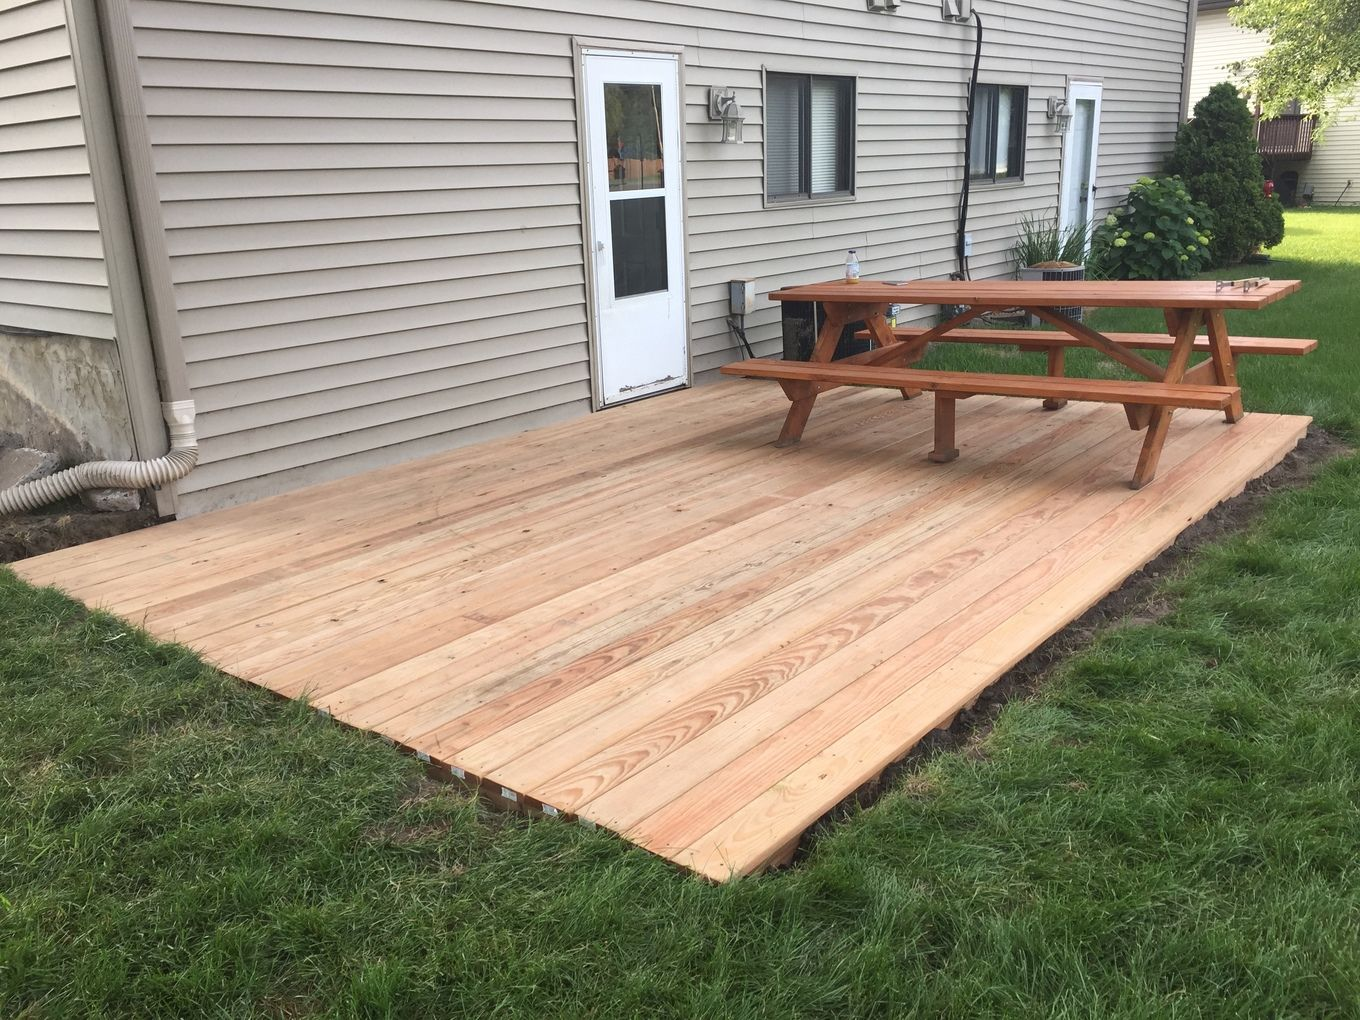 I built a ground-level deck in my back yard | Building a ...